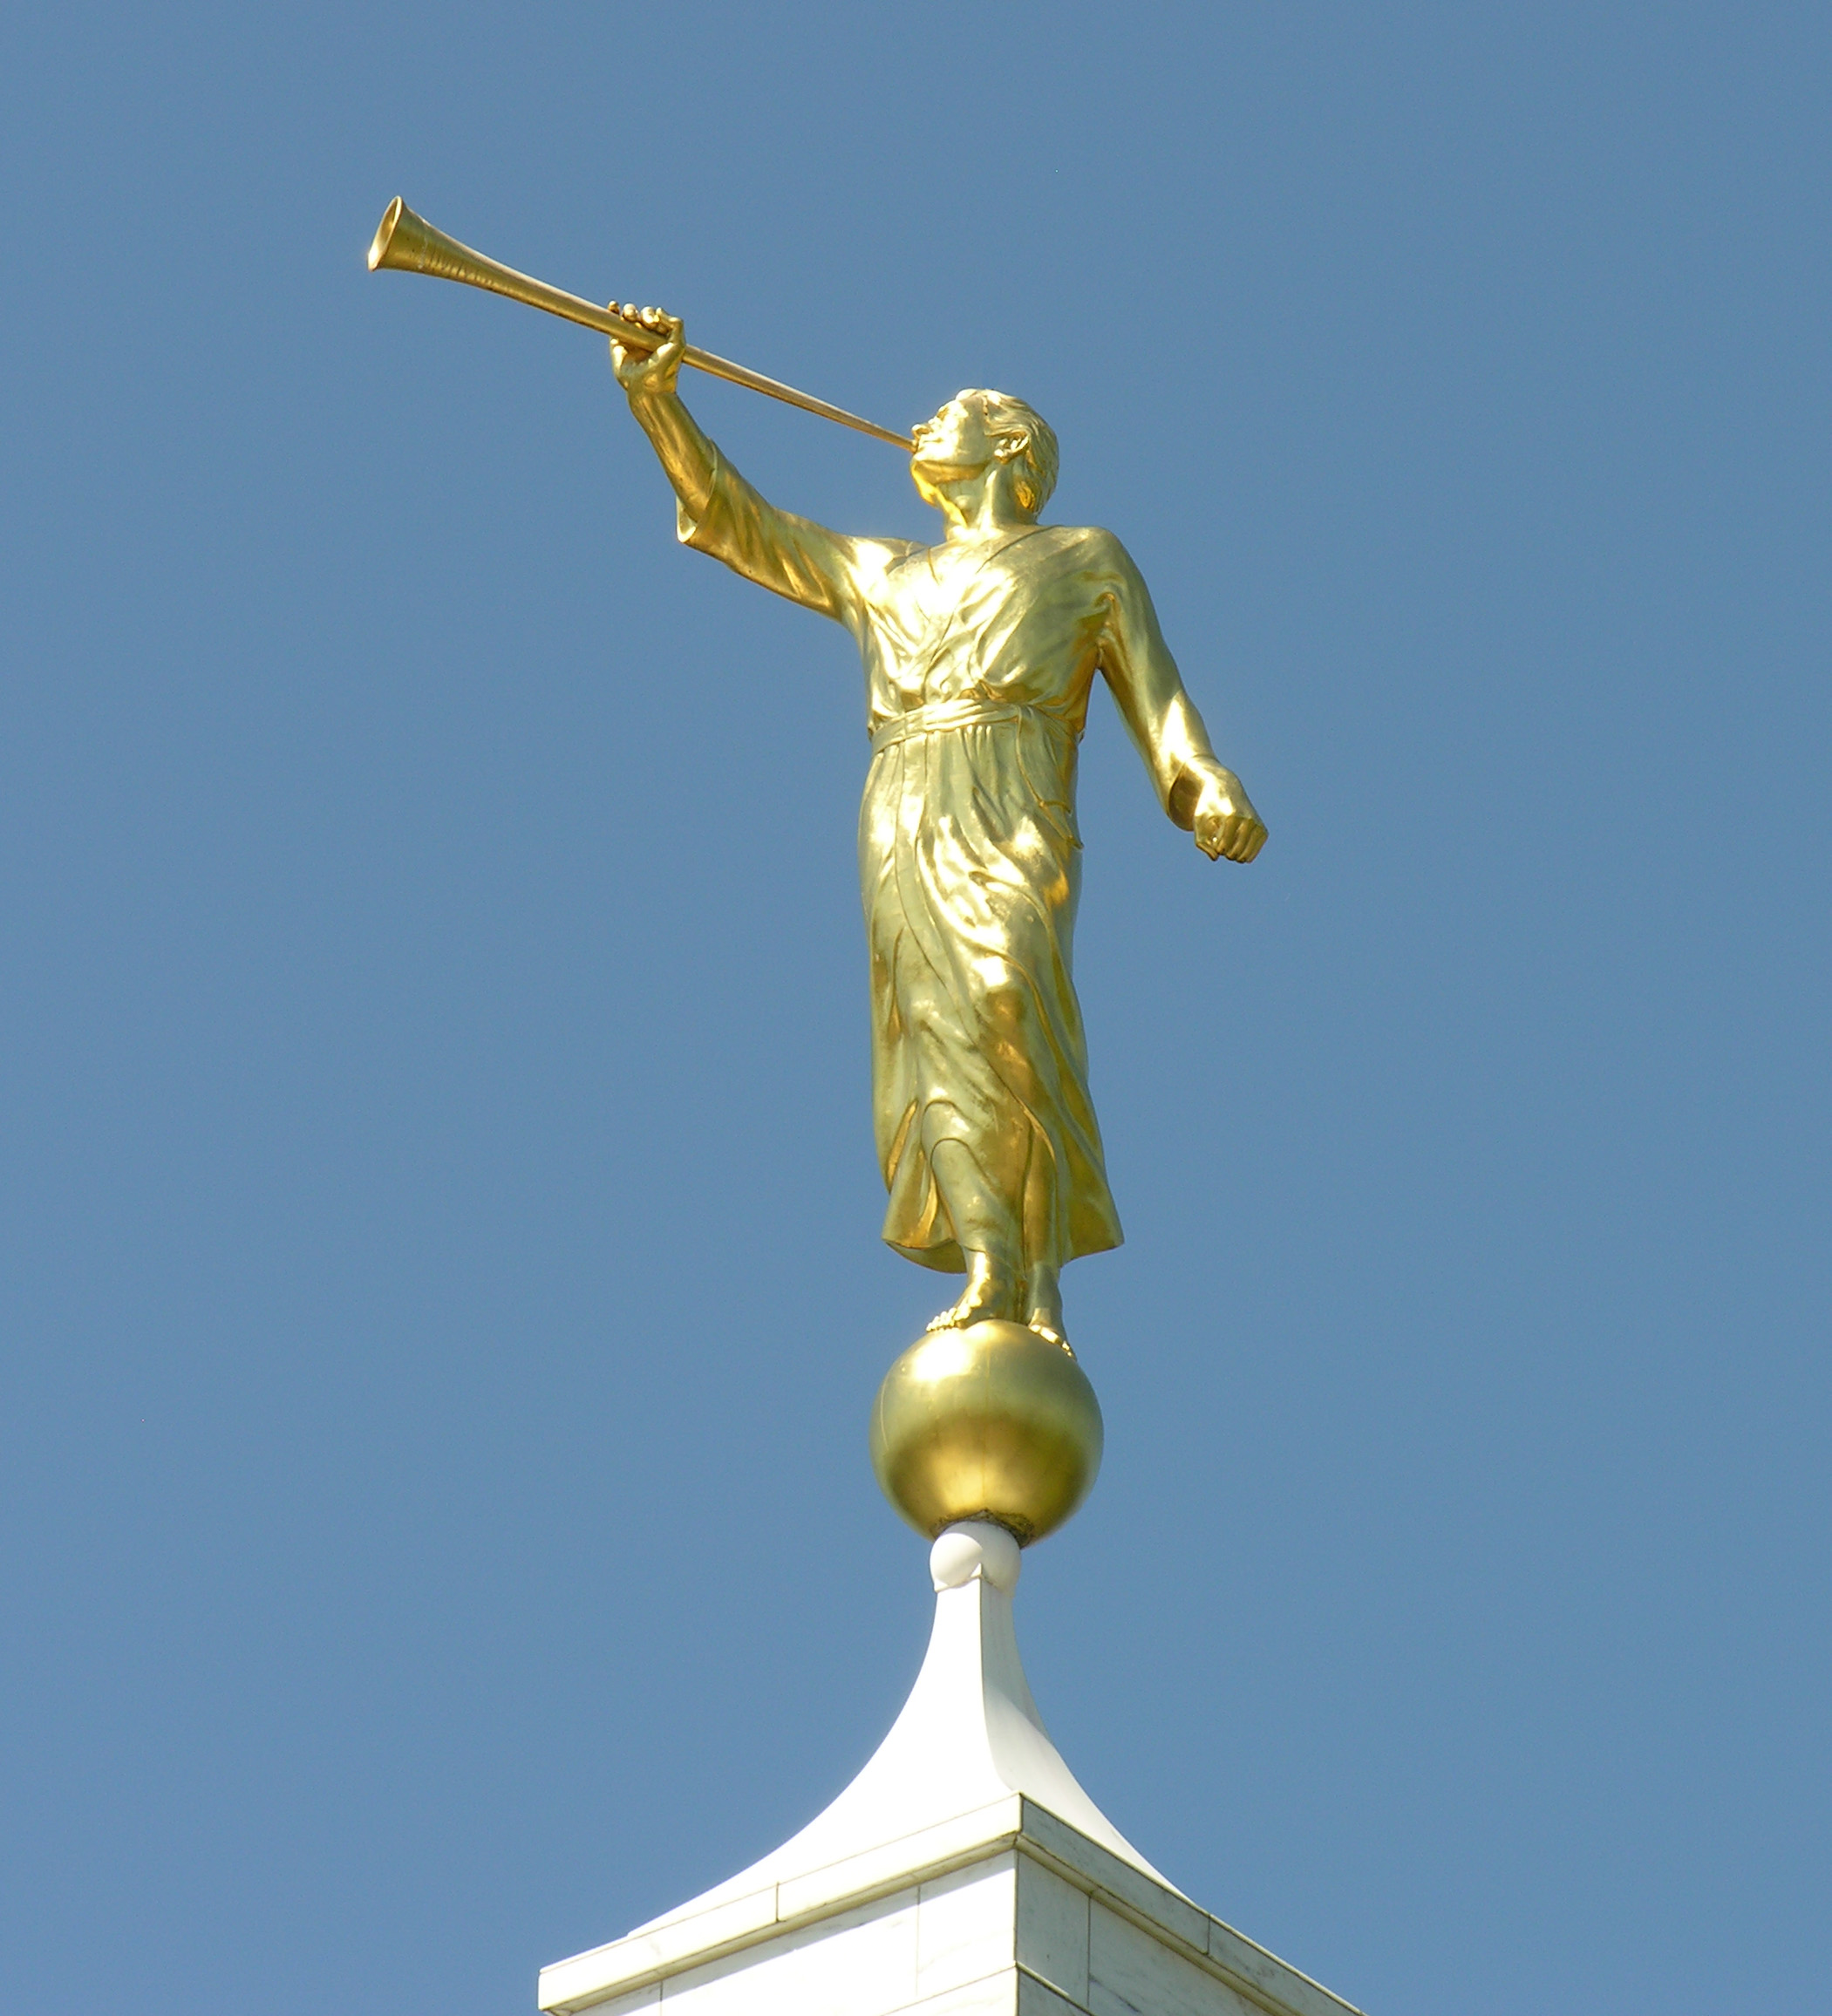 What is the golden statue on the top of most temples? - FairMormon